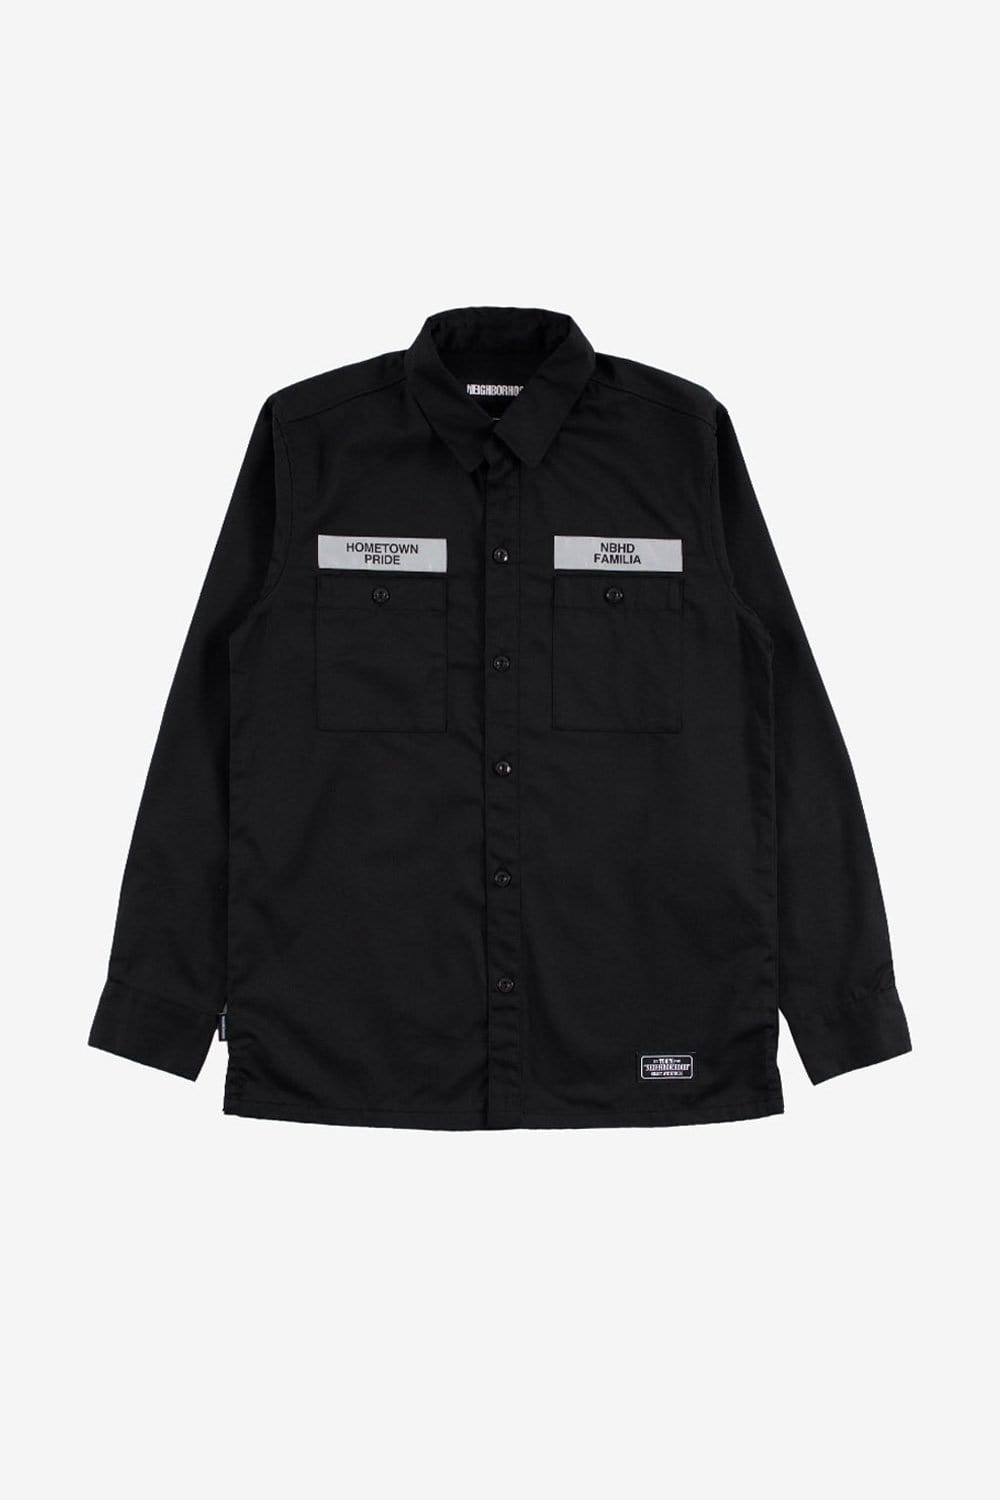 Neighborhood Apparel S EC Long Sleeve Shirt